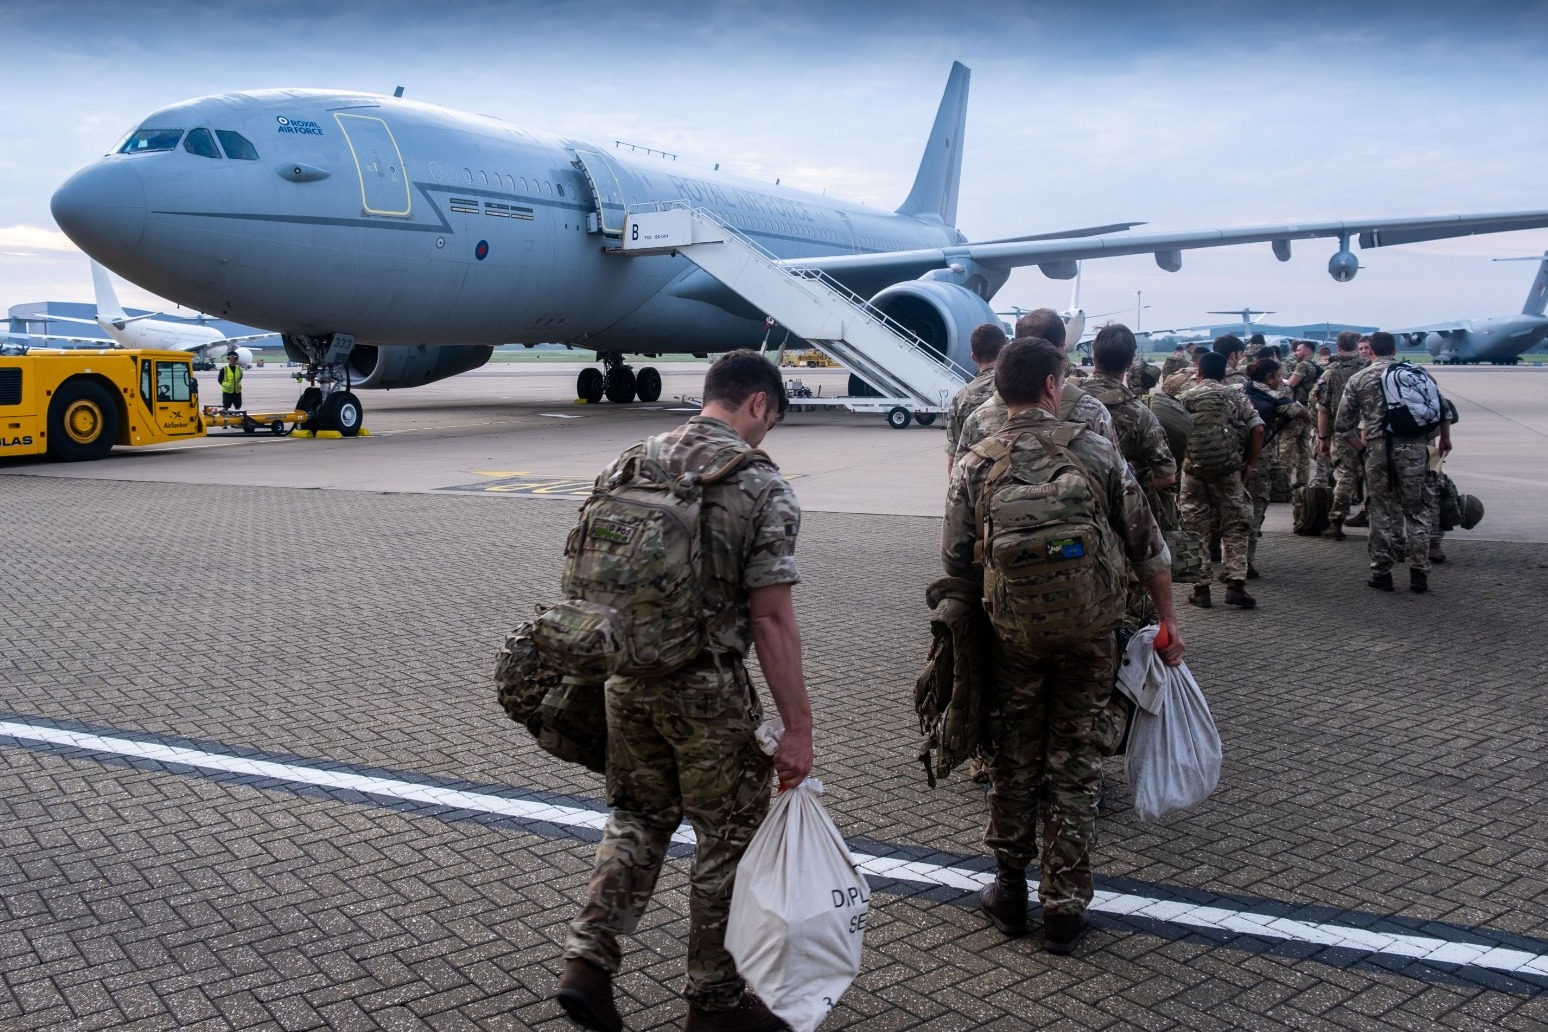 Wallace dismisses 'arrogant' claims UK can resolve Afghan crisis alone